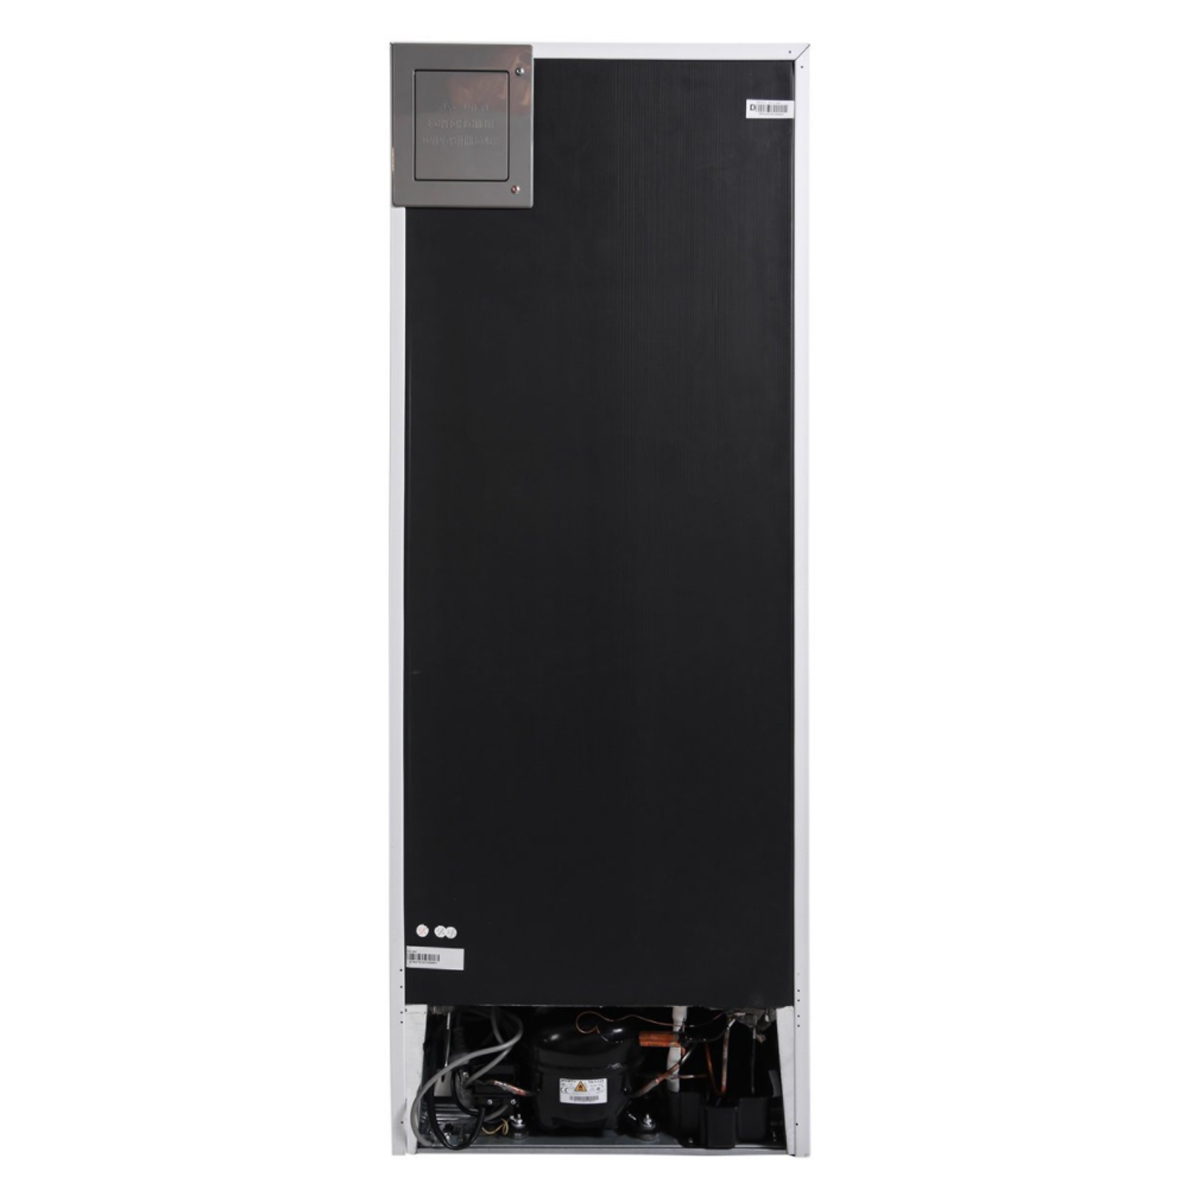 Lemair LTM221W 221Litres Top Mount Fridge 104750